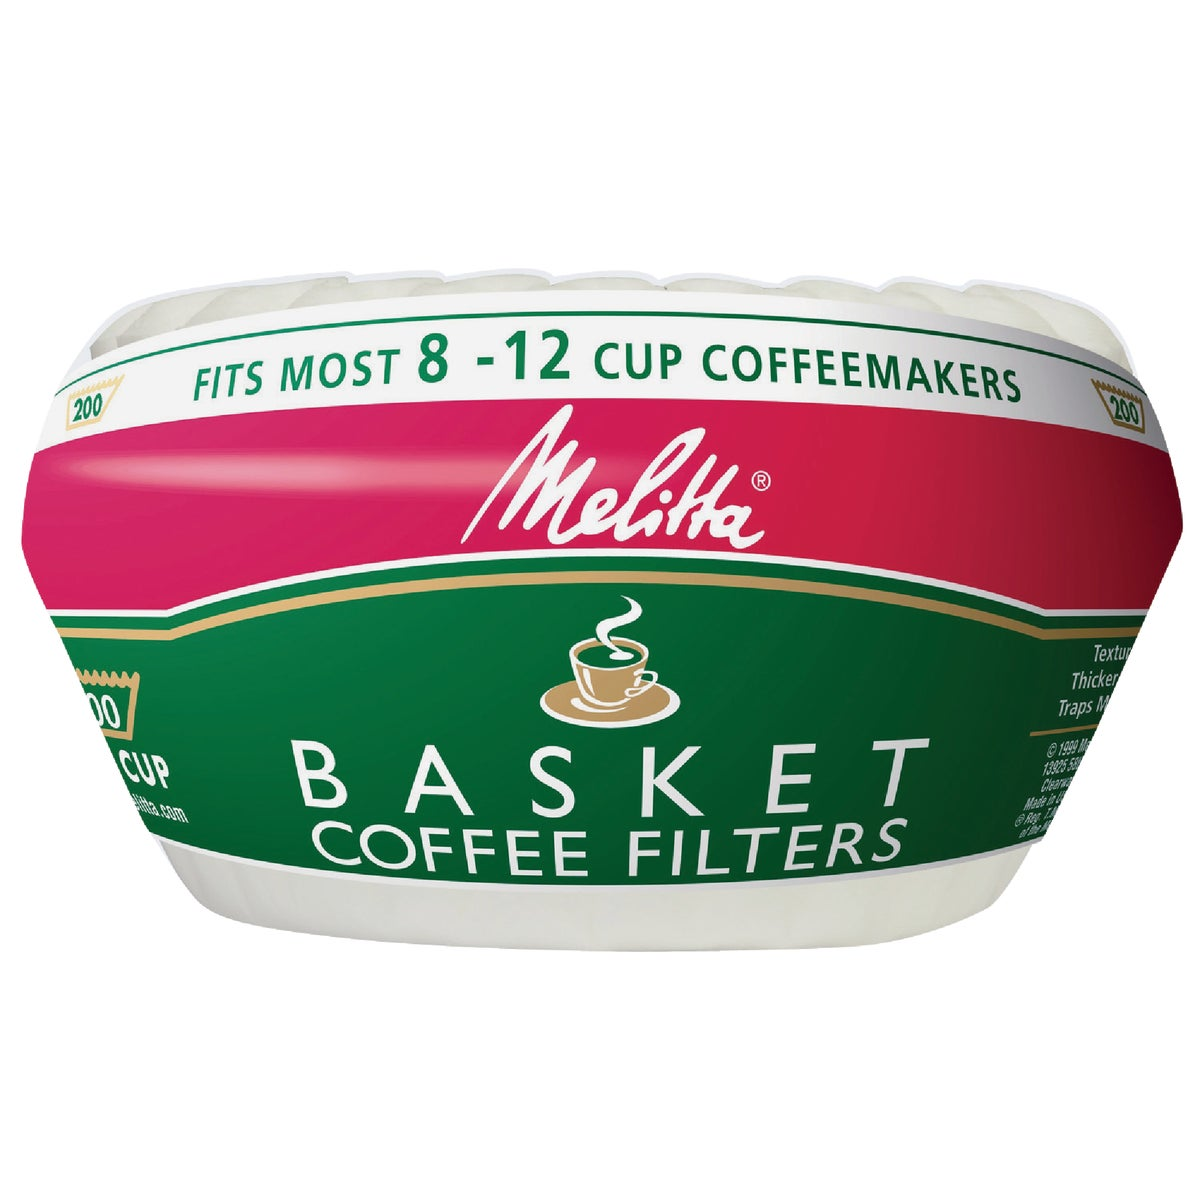 200CT COFFEE FILTER - 629524 by Melitta U S A Inc